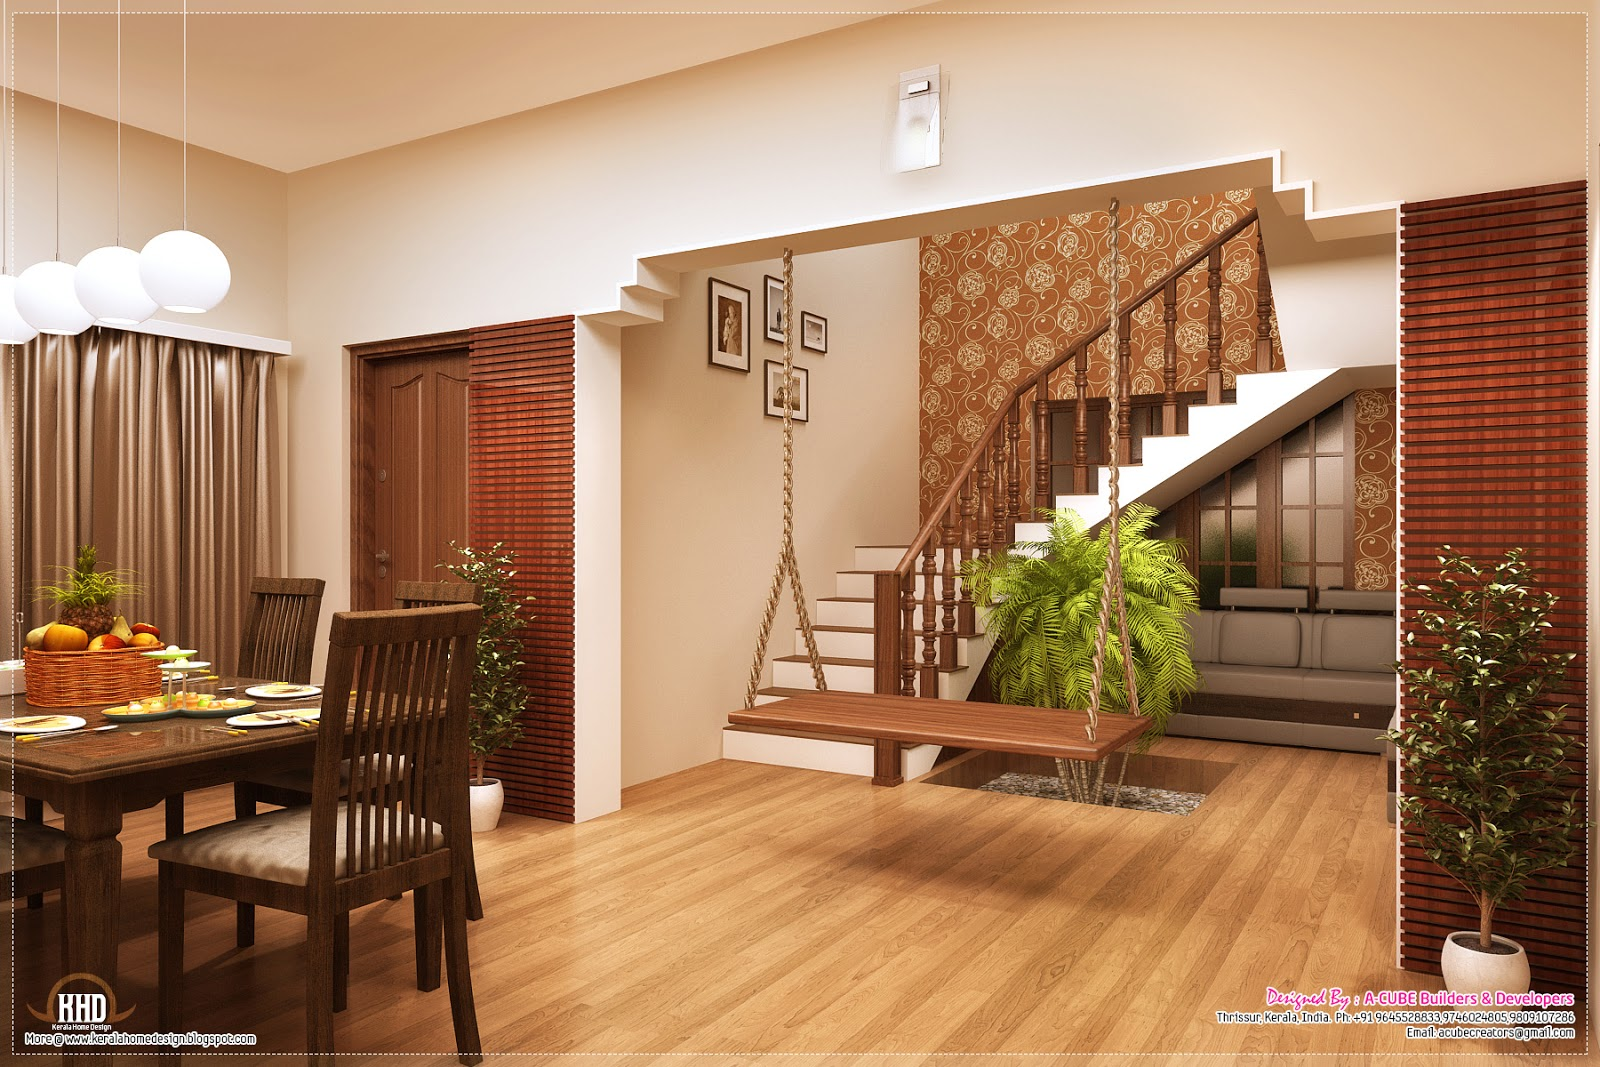 Dining and stair design & Awesome interior decoration ideas - Kerala home design and floor plans